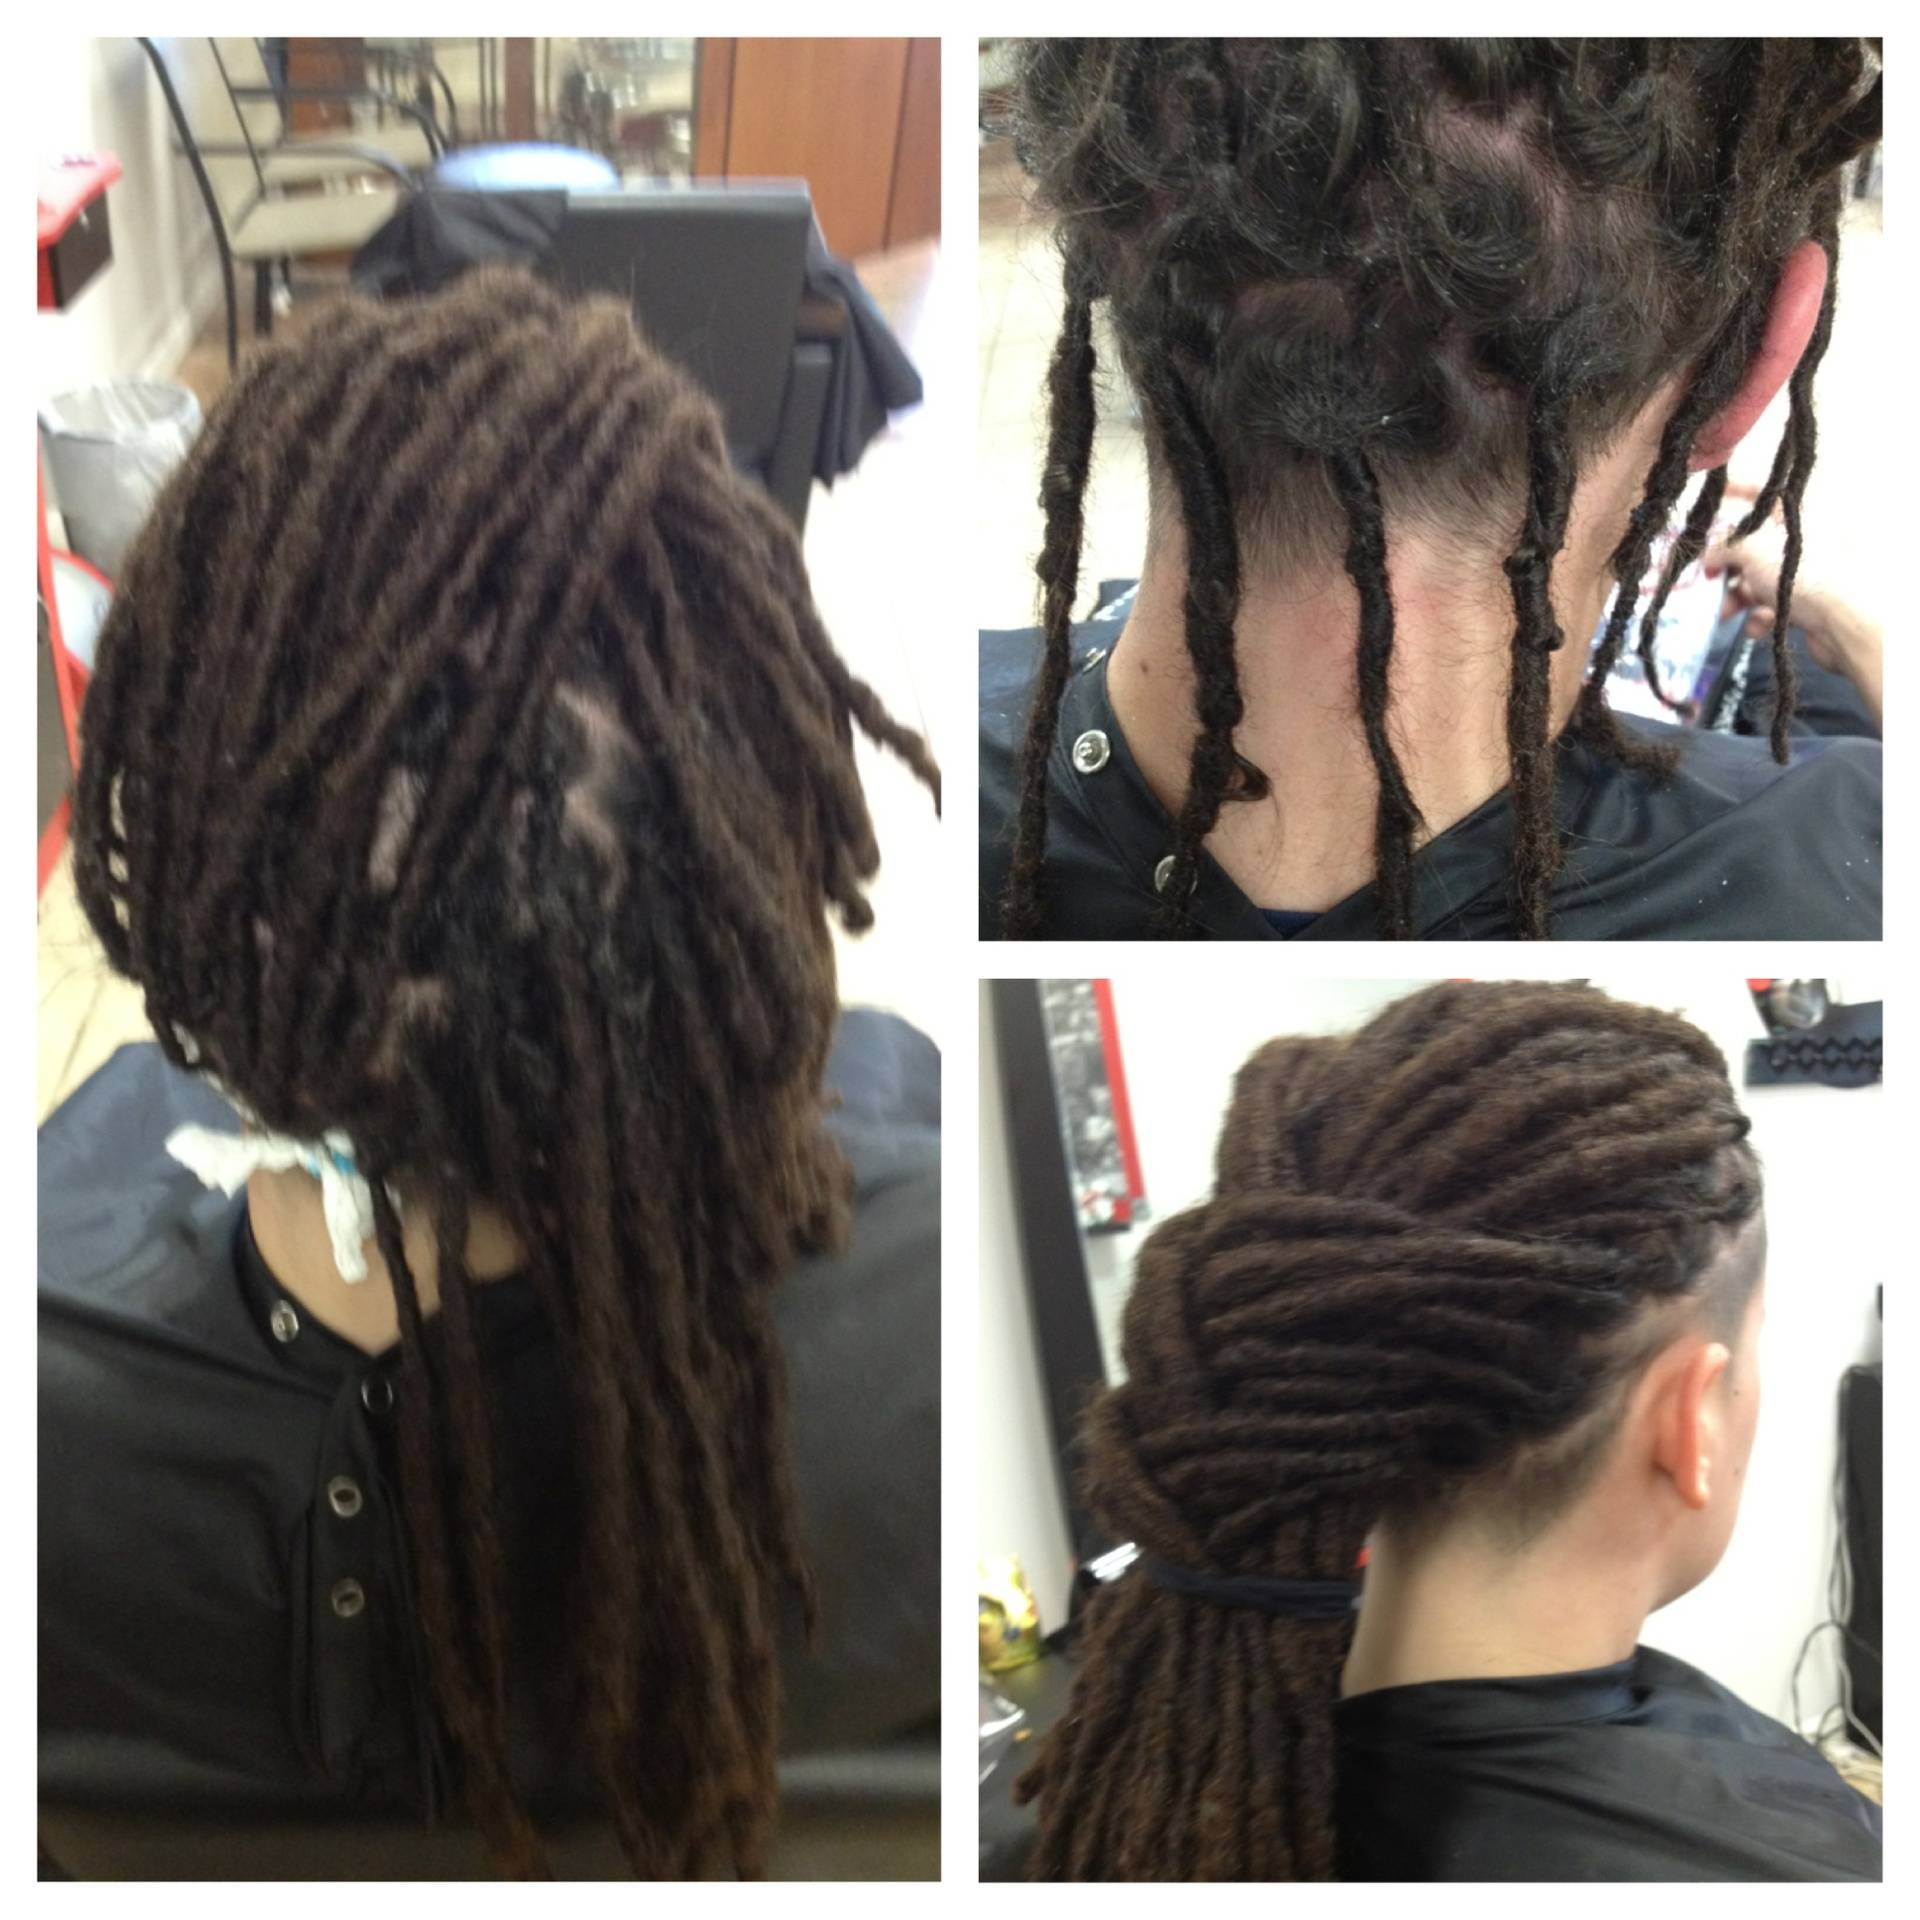 These dreads after Bee took over maintaining them